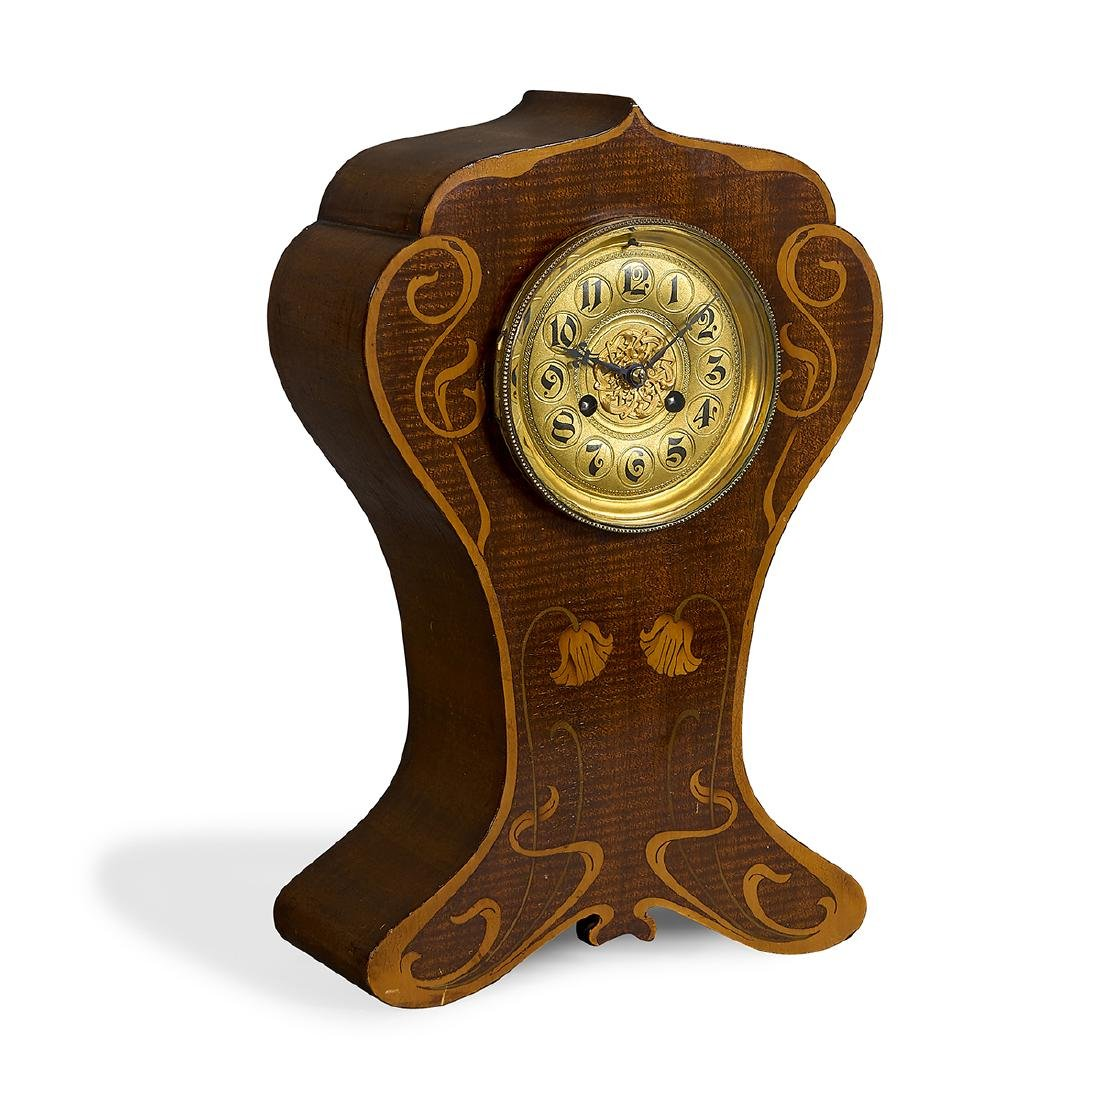 English Arts & Crafts inlaid mantle clock